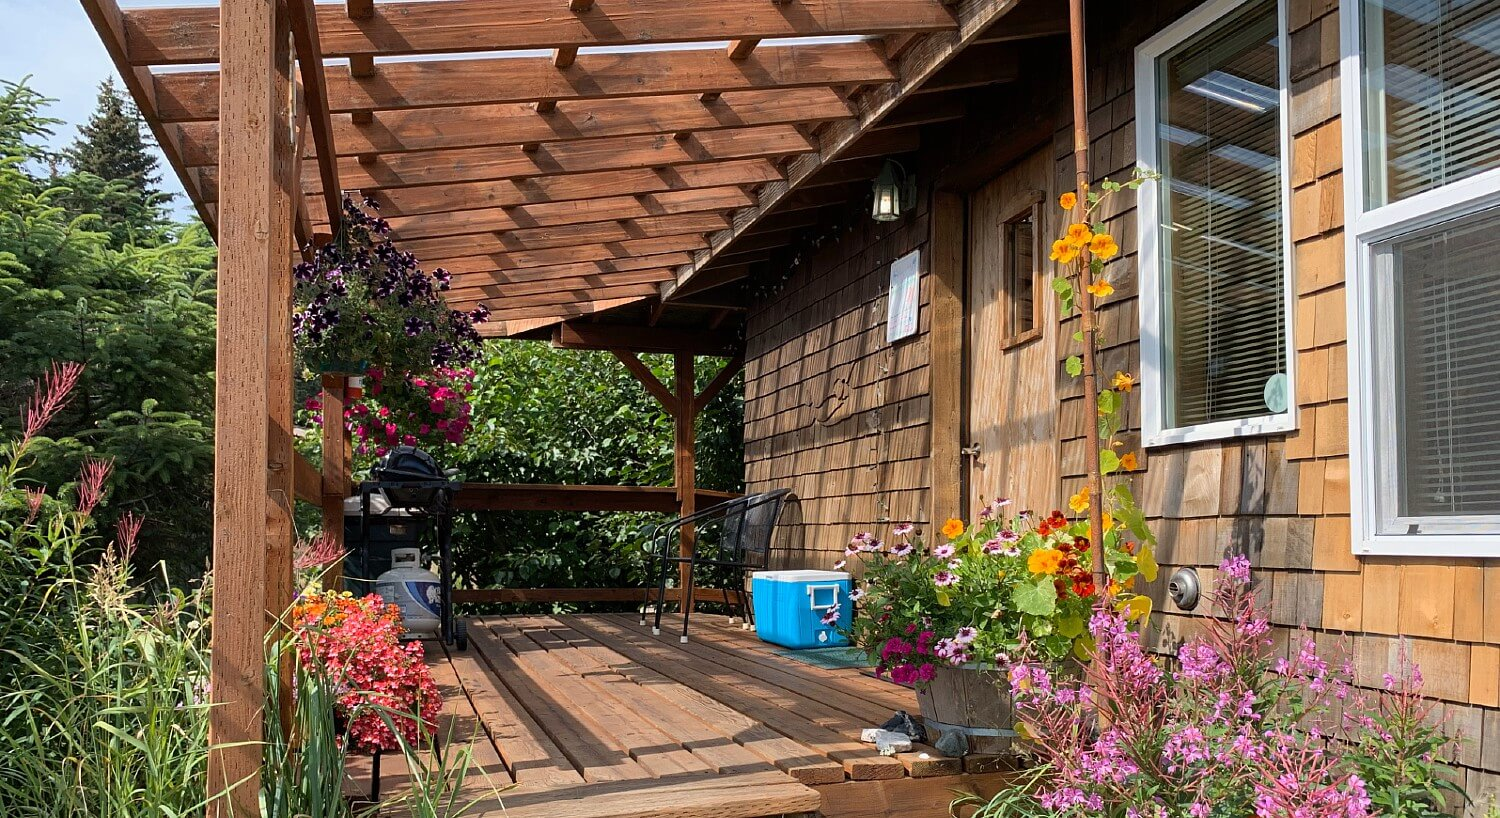 Spacious front porch of a wood cabin with pergola, chairs, bbq, and many colorful flowers